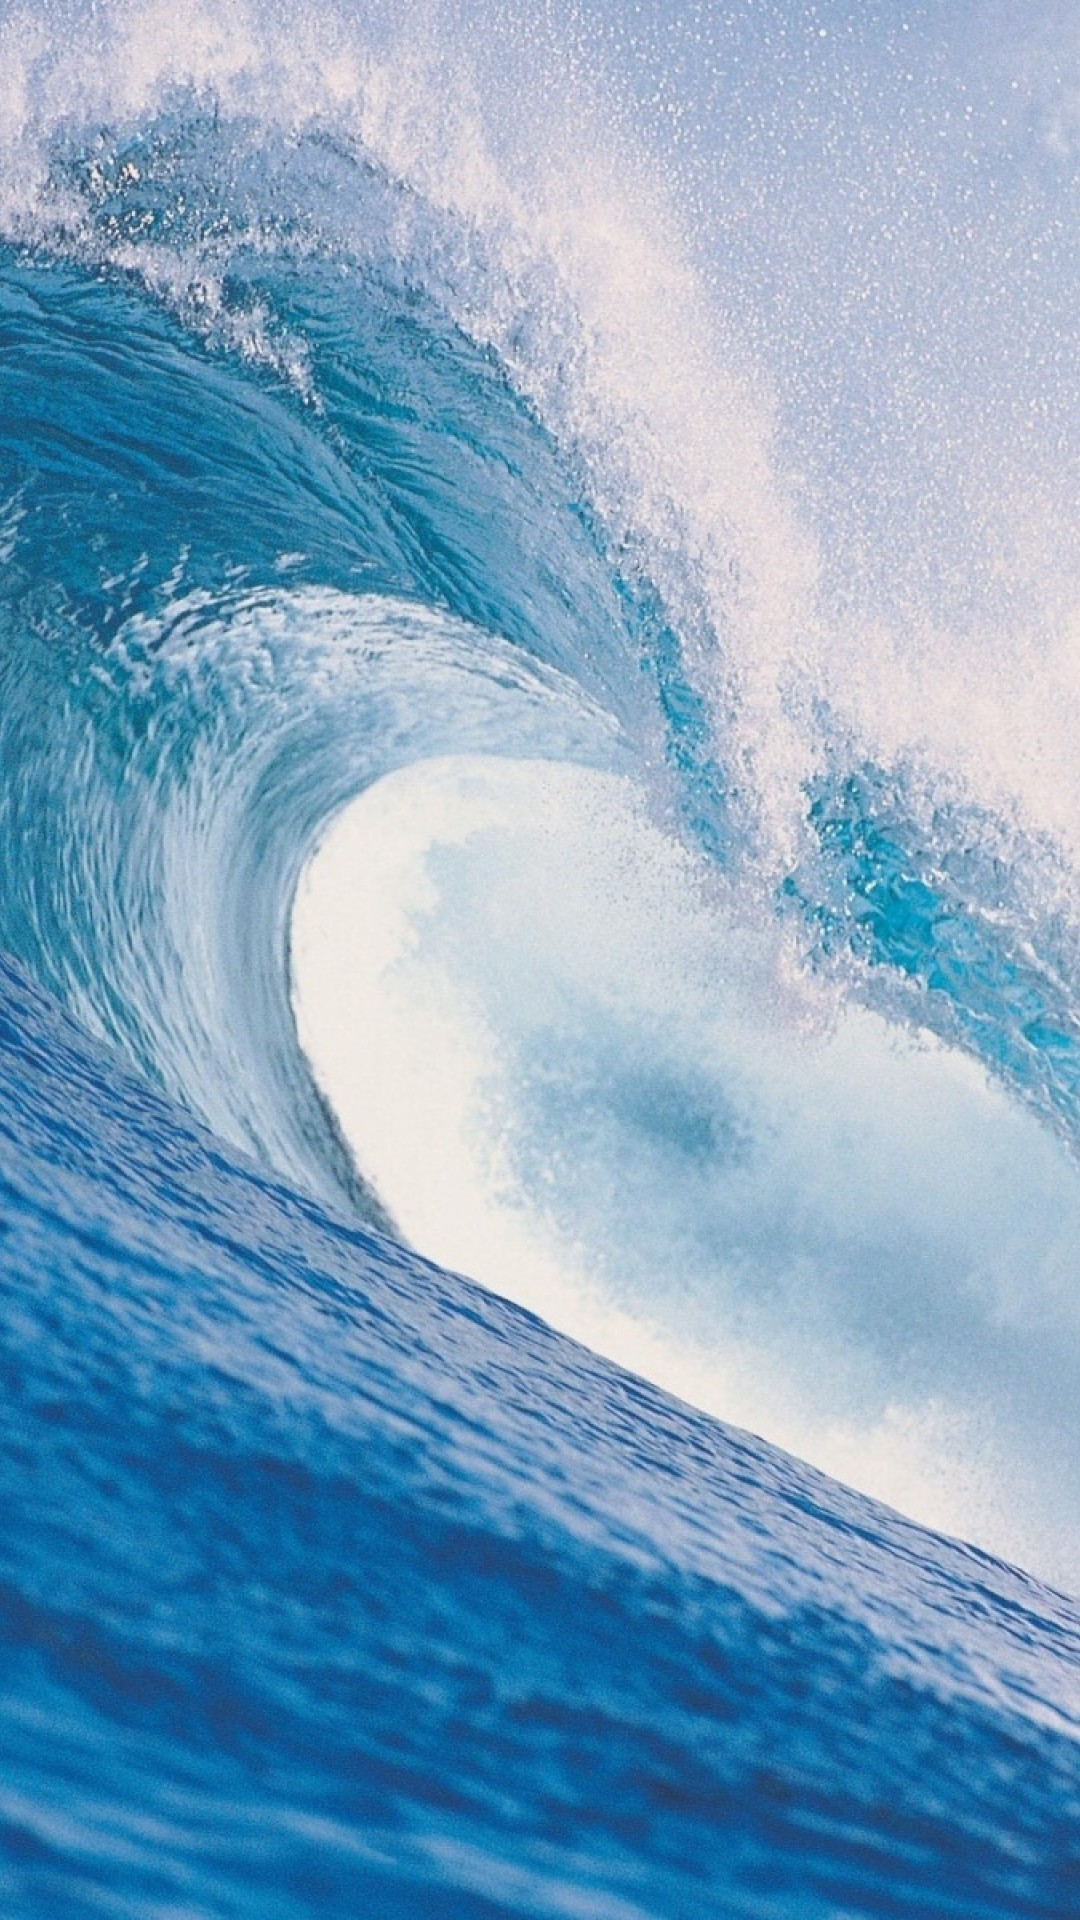 Wave Wallpaper High Resolution Wave Wallpapers ·...